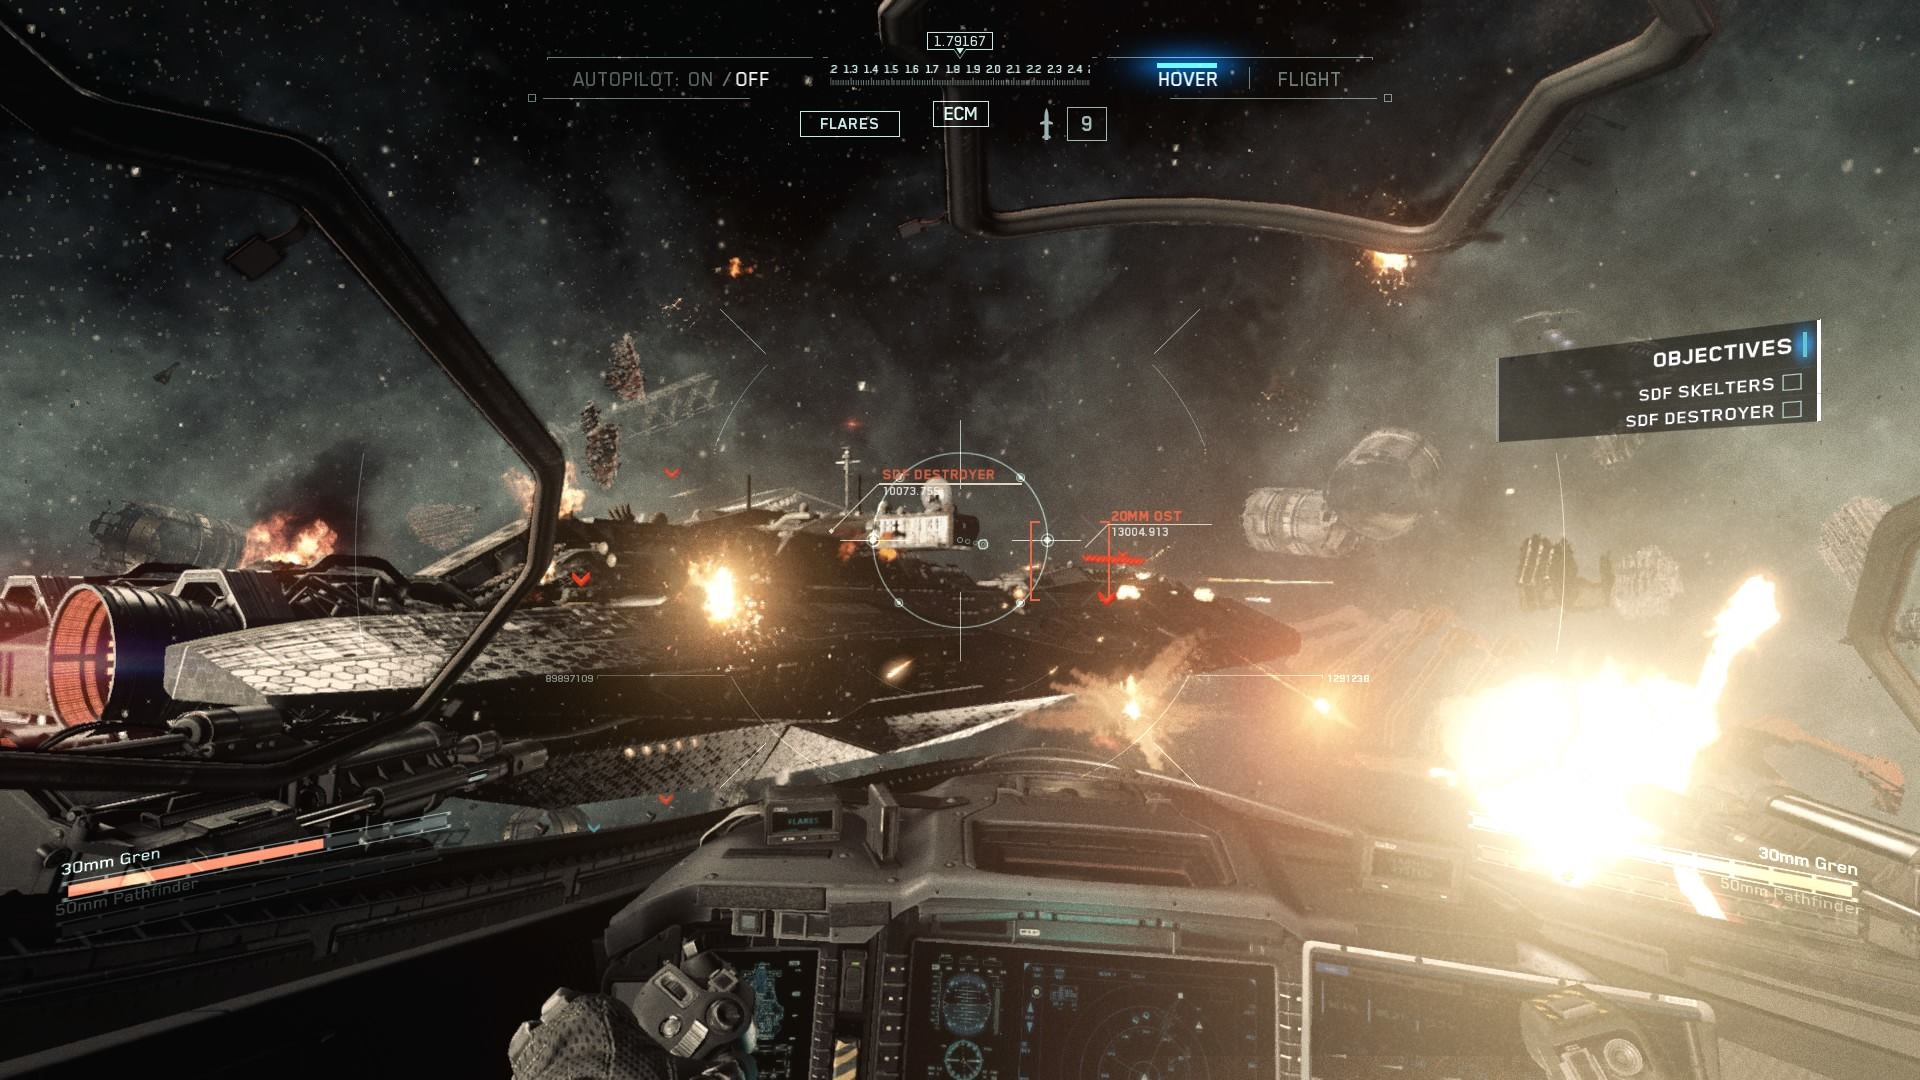 Call Of Duty Infinite Warfare Screenshots For Playstation 4 Mobygames Game Ps4 Enemy Destroyers Will Take More Time To Destroy